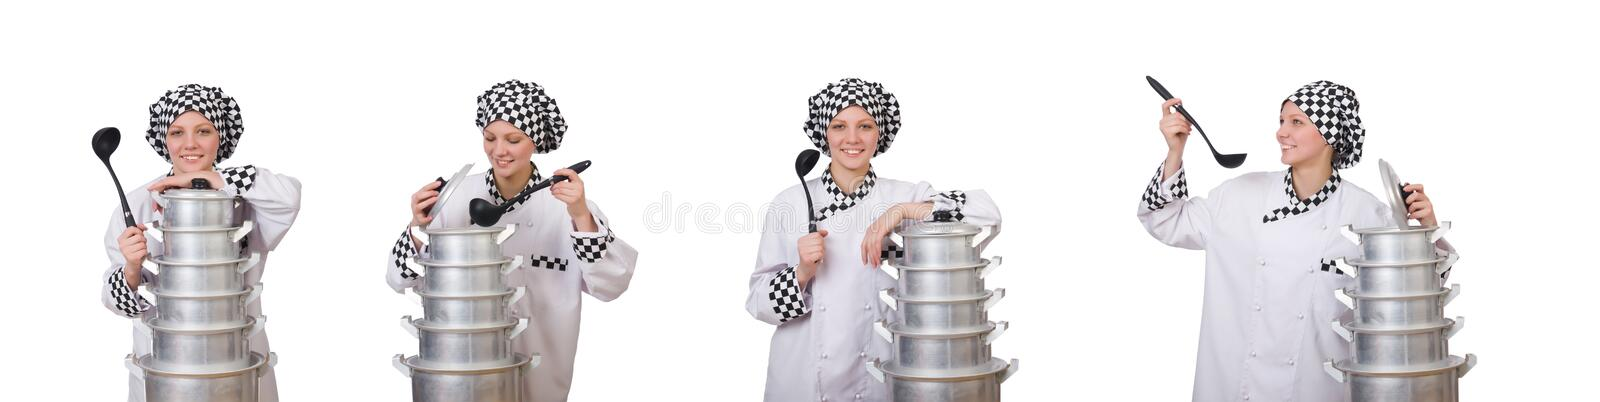 Cook with stack of pots on white royalty free stock photo